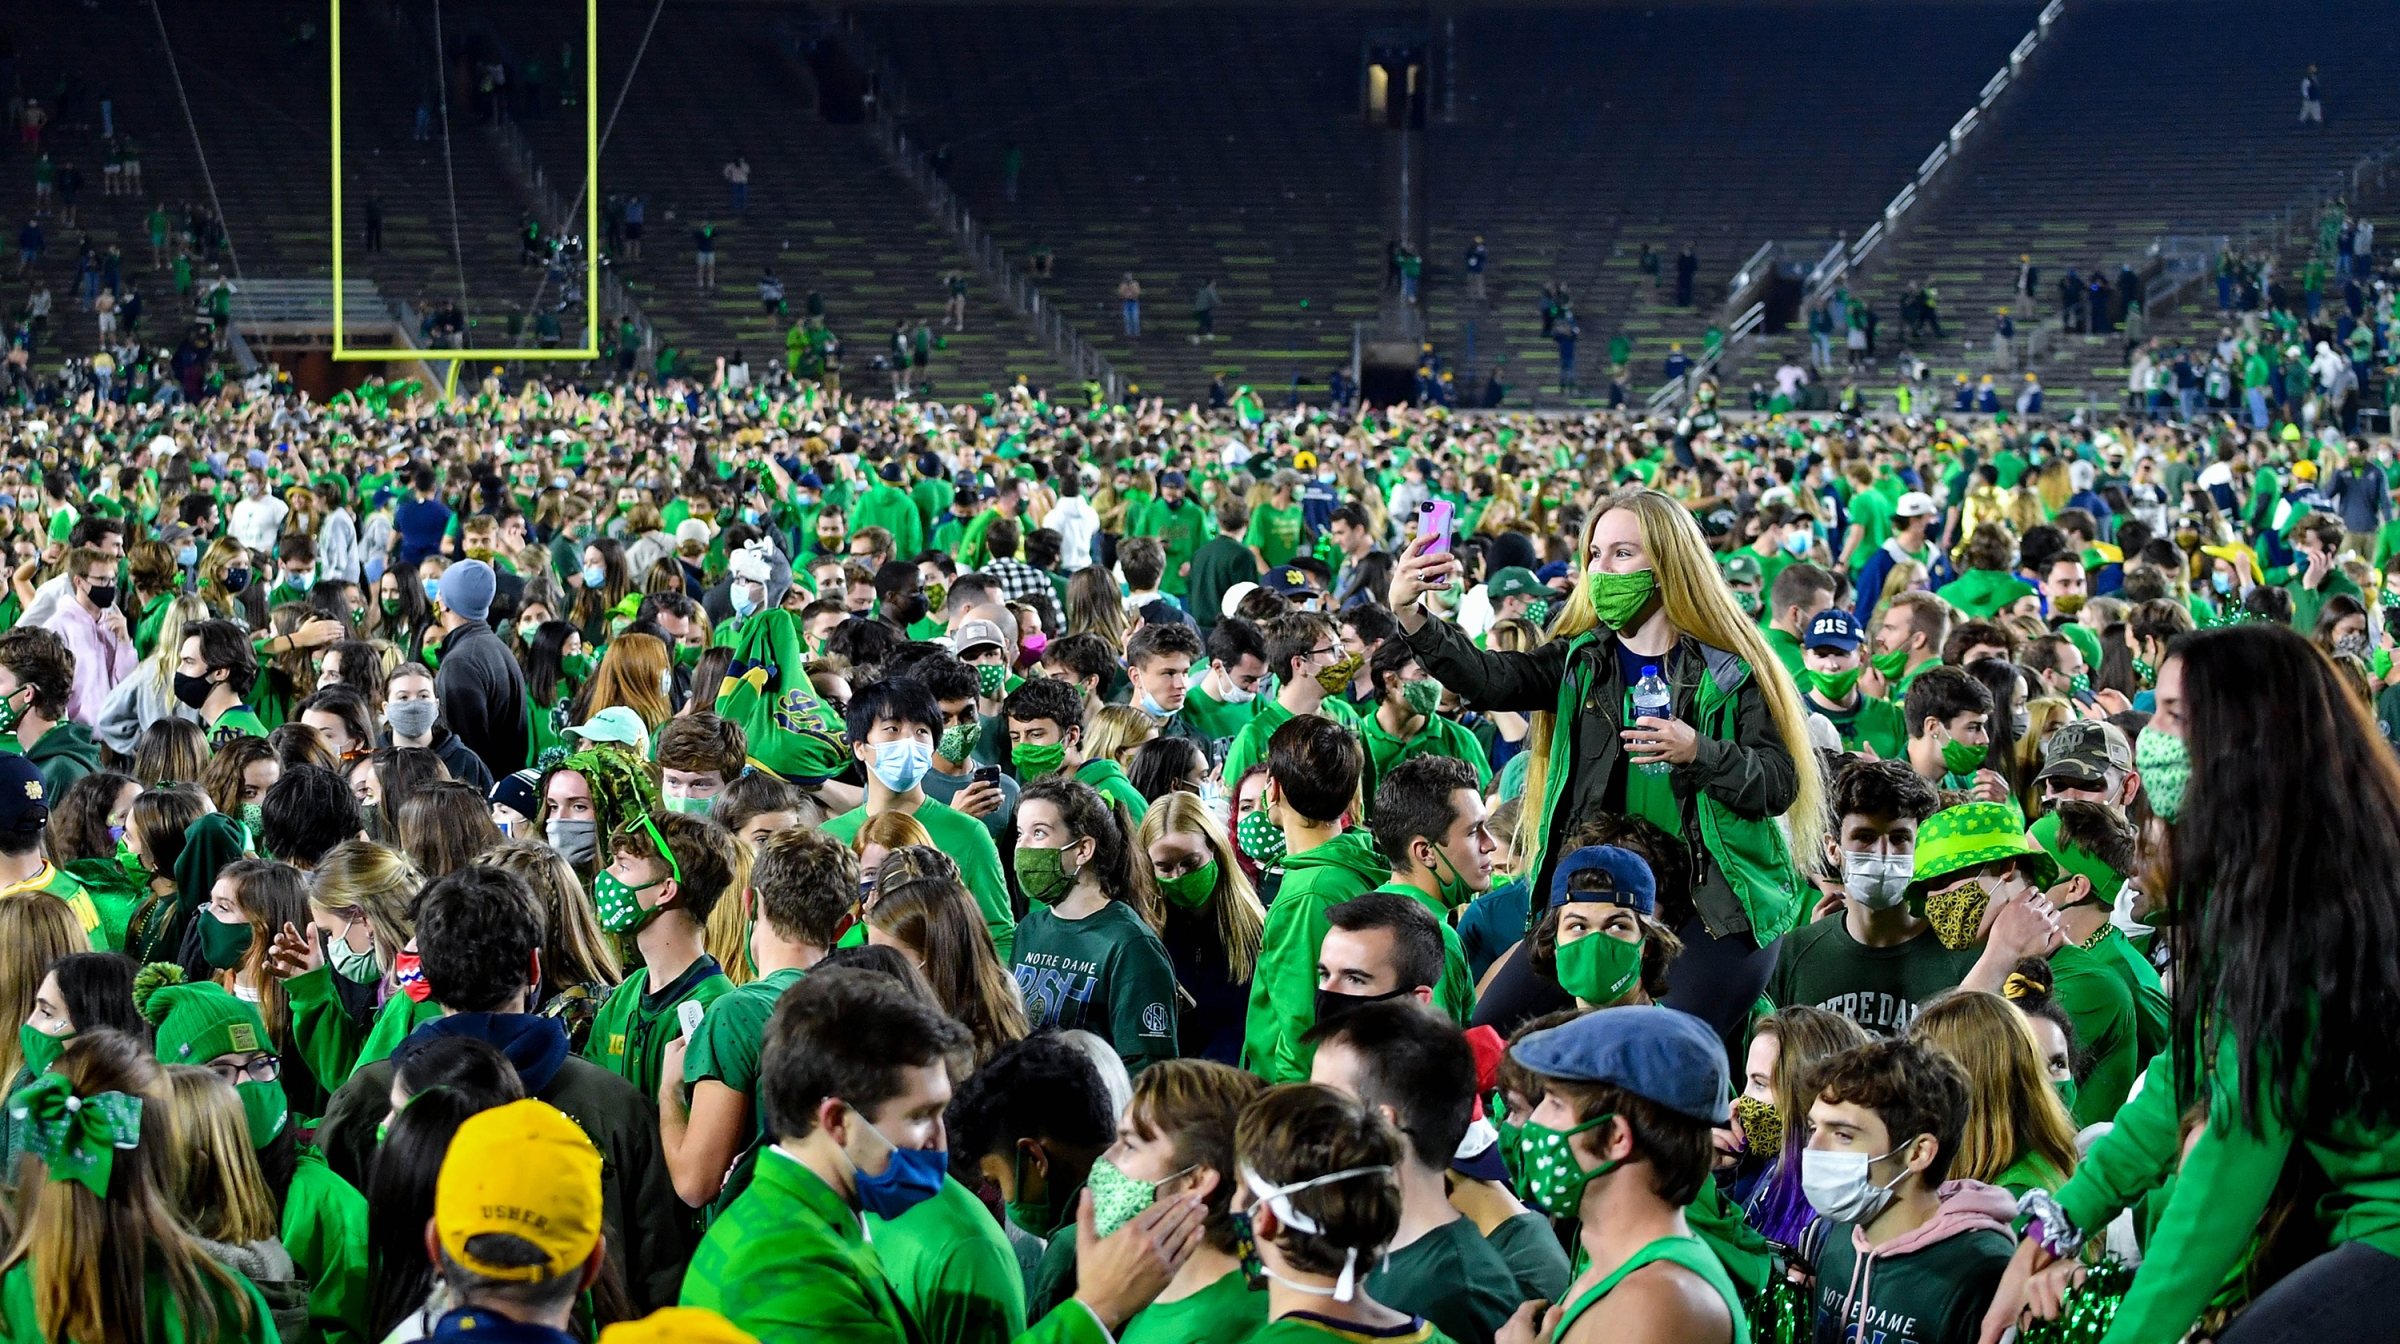 Fans storm the field after the Notre Dame Fighting Irish defeated the Clemson Tigers 47-40 in double overtime at Notre Dame Stadium on November 7, 2020